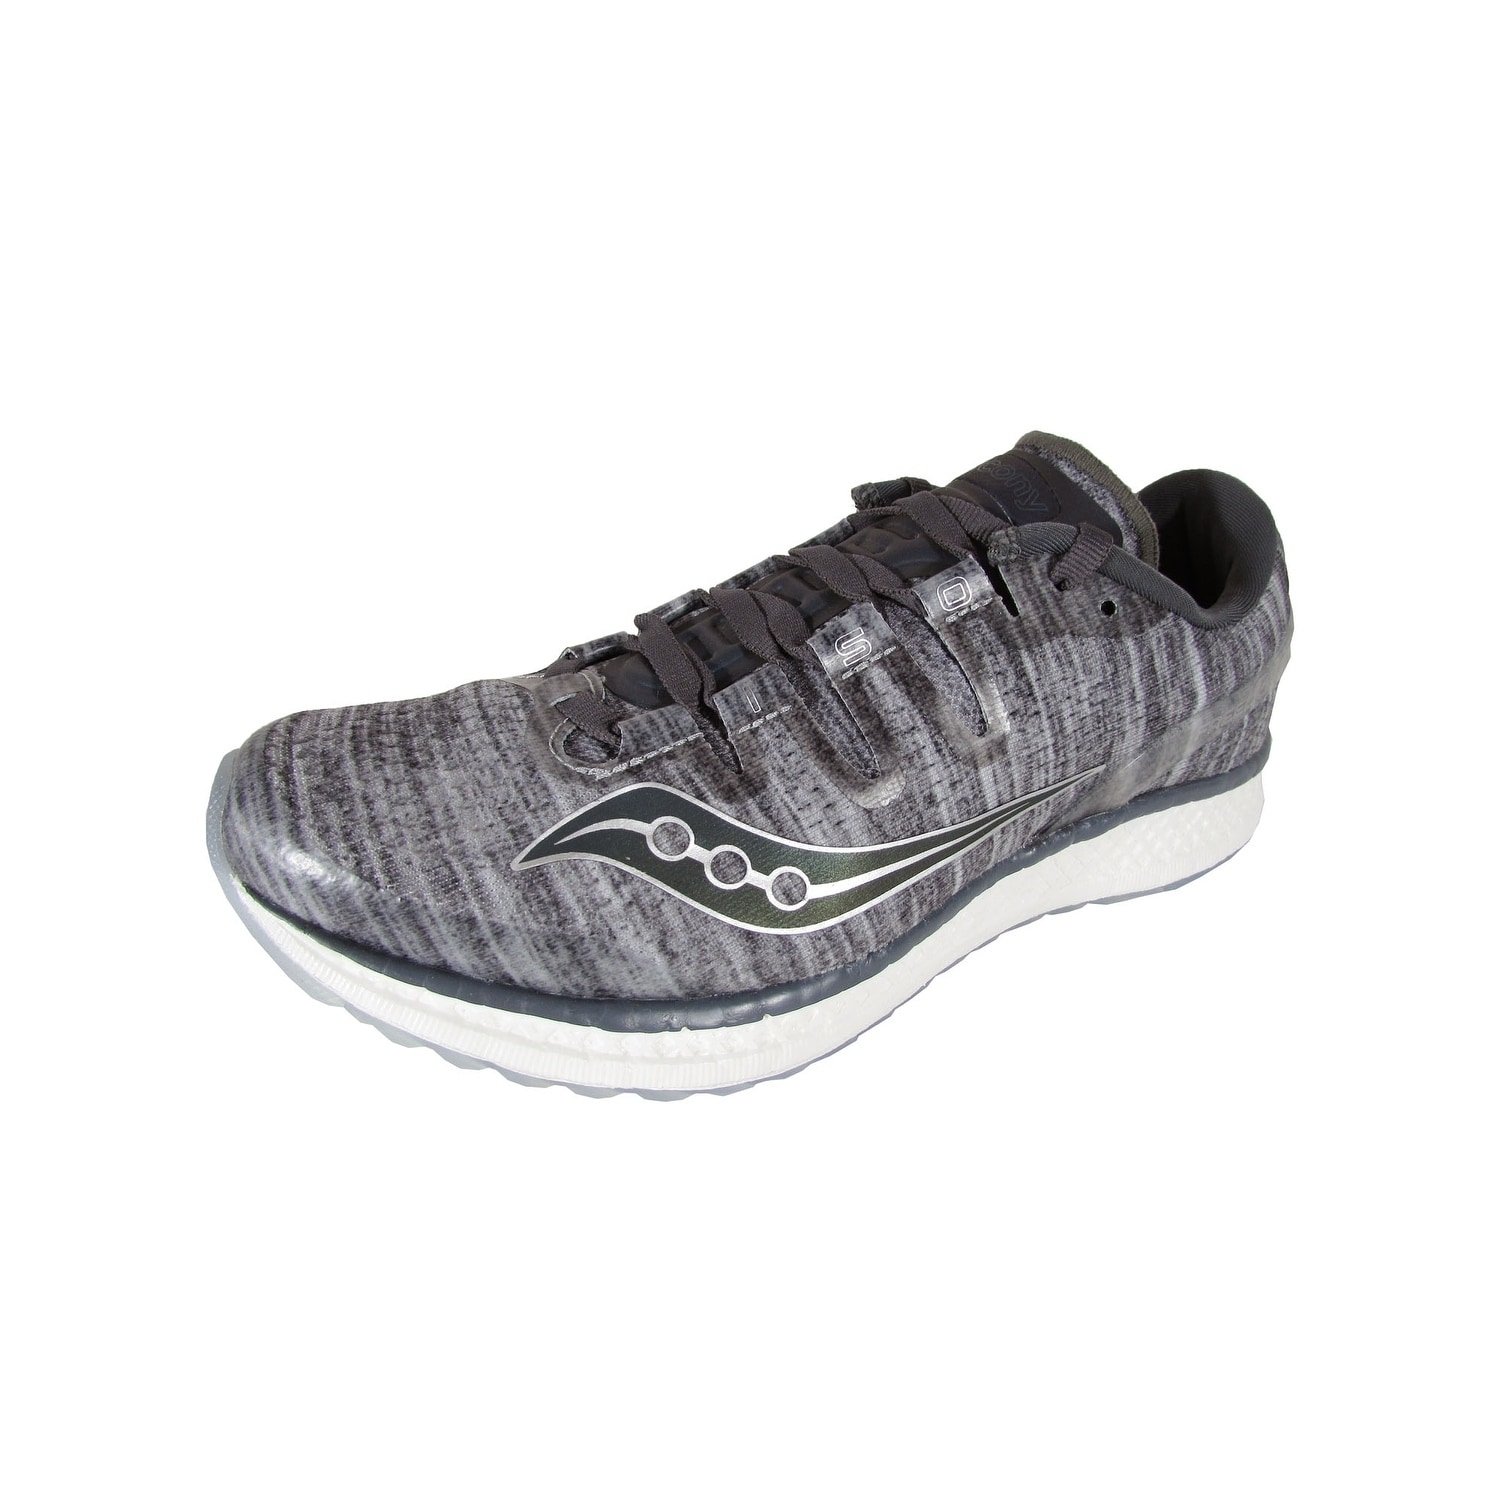 ef8f89bb6af Shop Saucony Womens Freedom ISO Running Sneaker Shoes